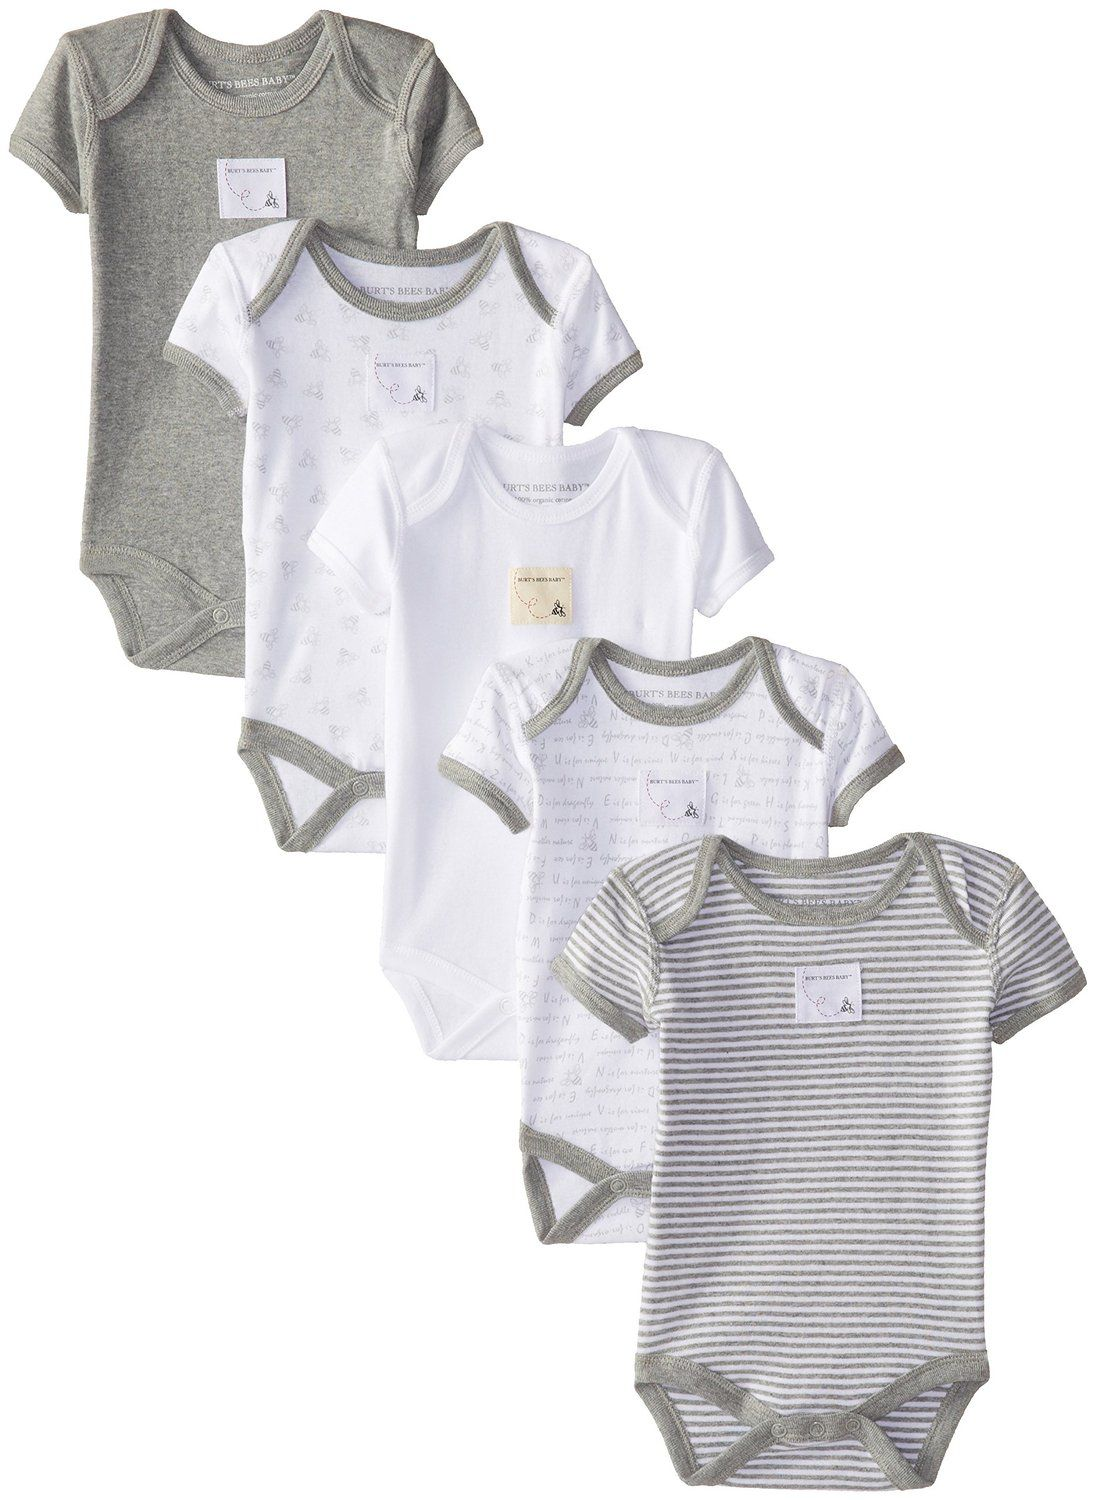 Burts Bees Baby Clothes Adorable Burt's Bees Unibaby Organic Set Of 5 Short Sleeve Bodysuits Review